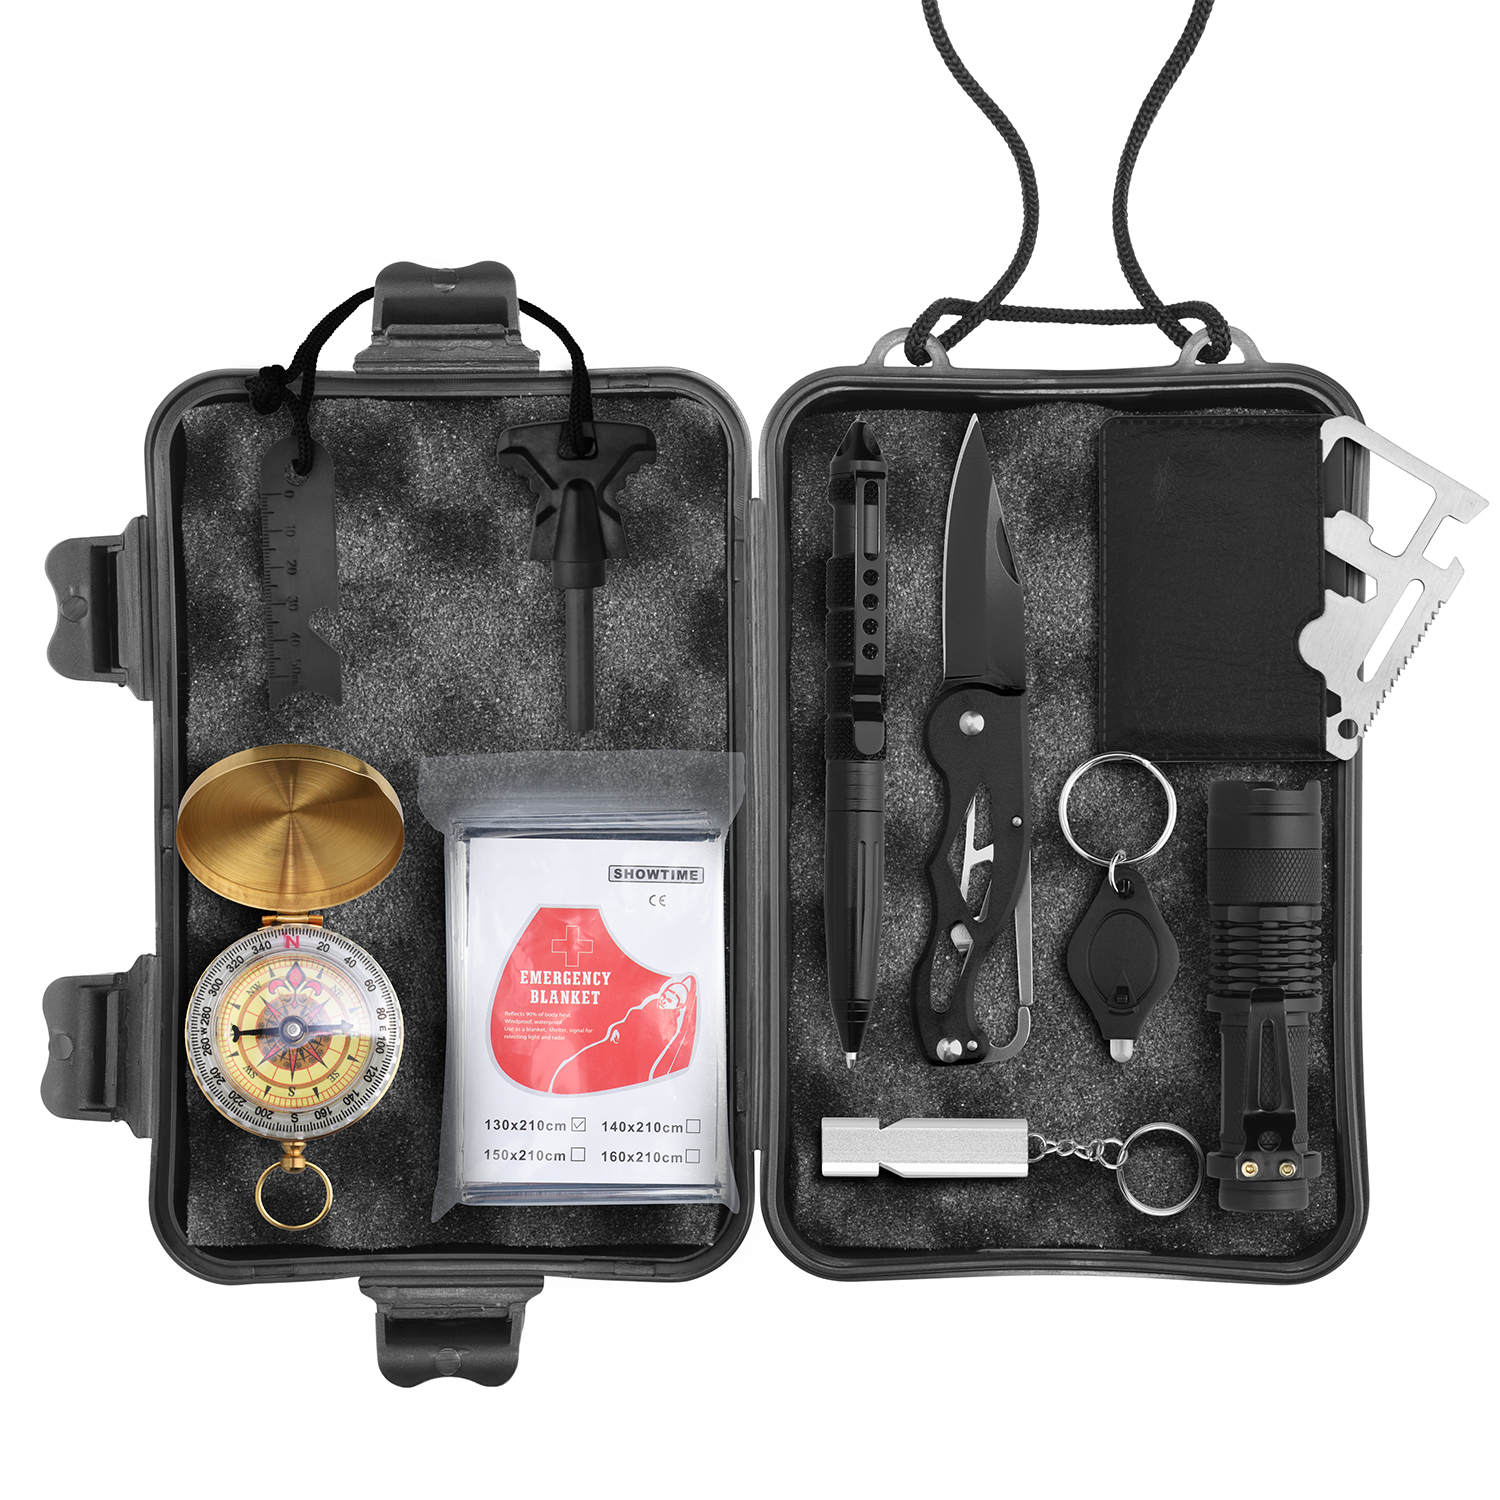 Image for Wild Peak PREPARE-1 Survival Tool Kit for Camping Gear, Hiking, Climbing, Fishing, Hunting, Backpacks from Circuit City